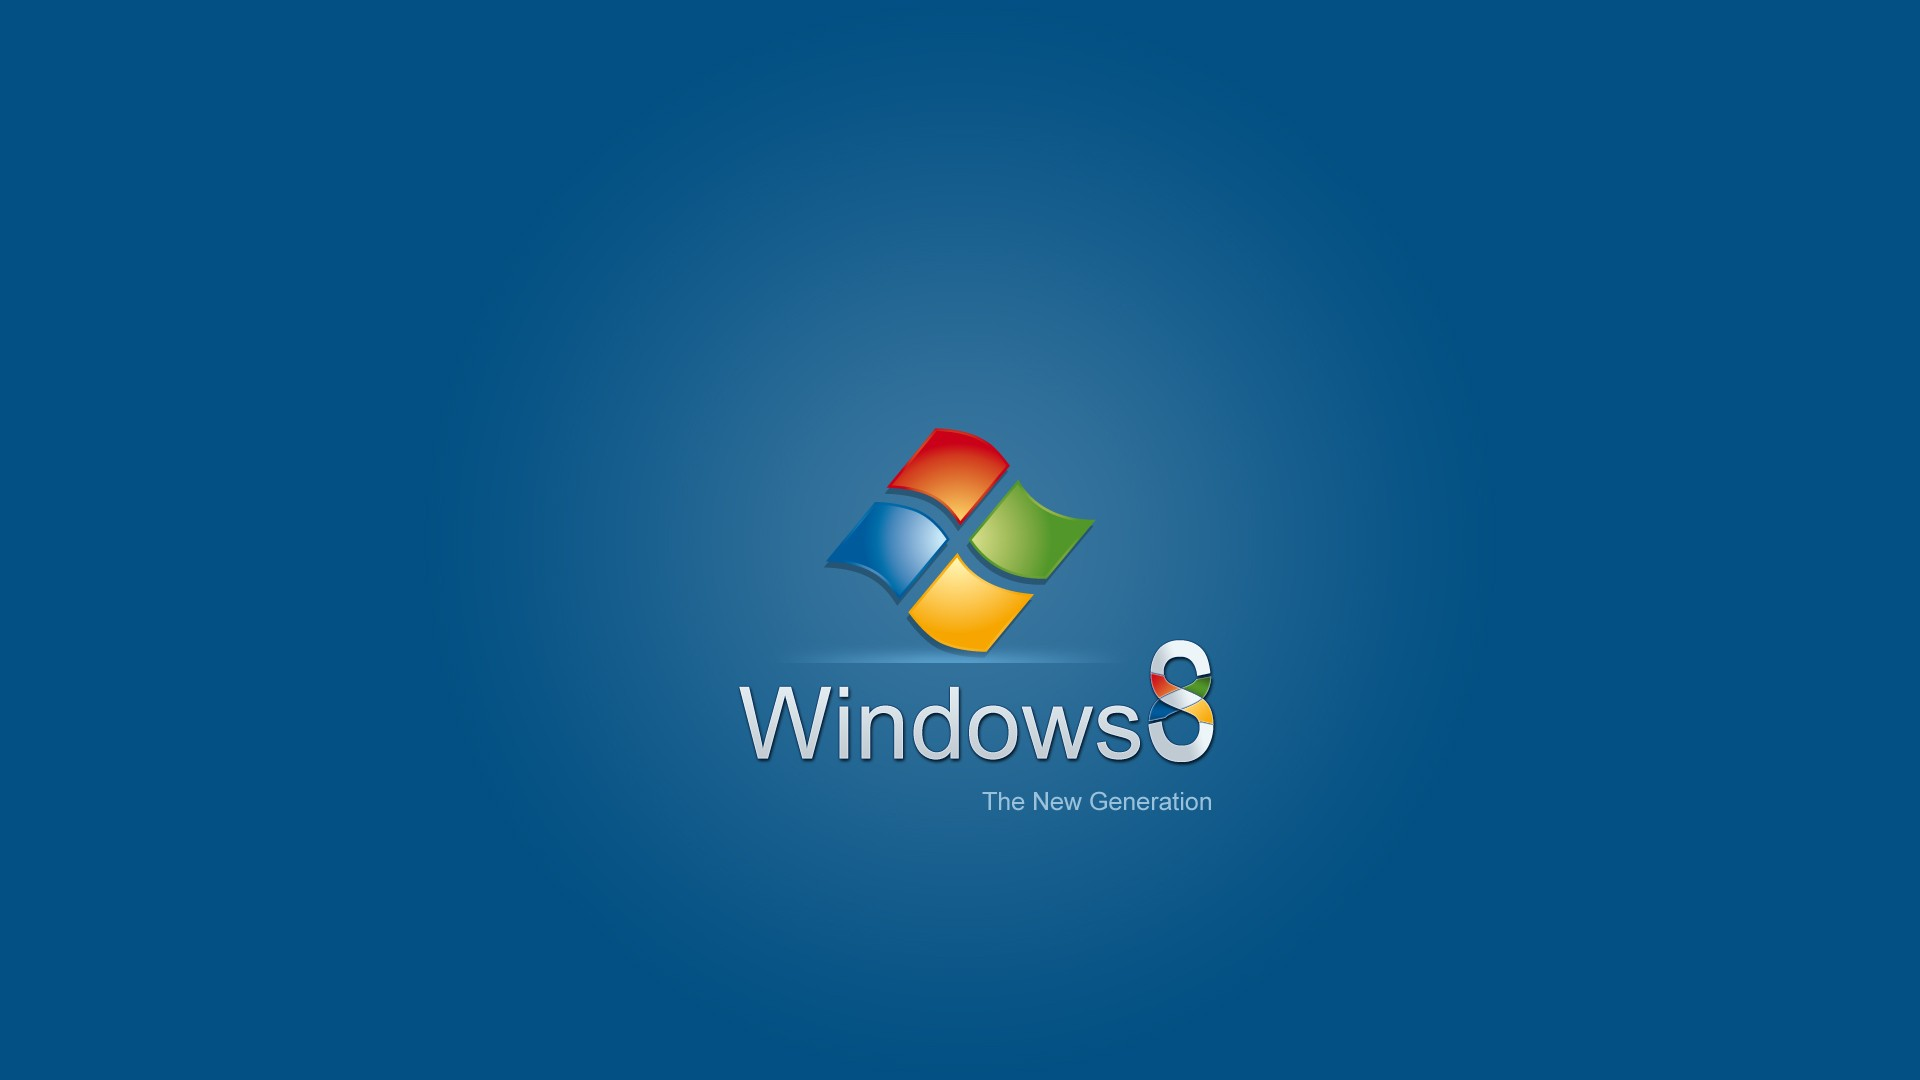 Download Windows 8 HD Wallpaper